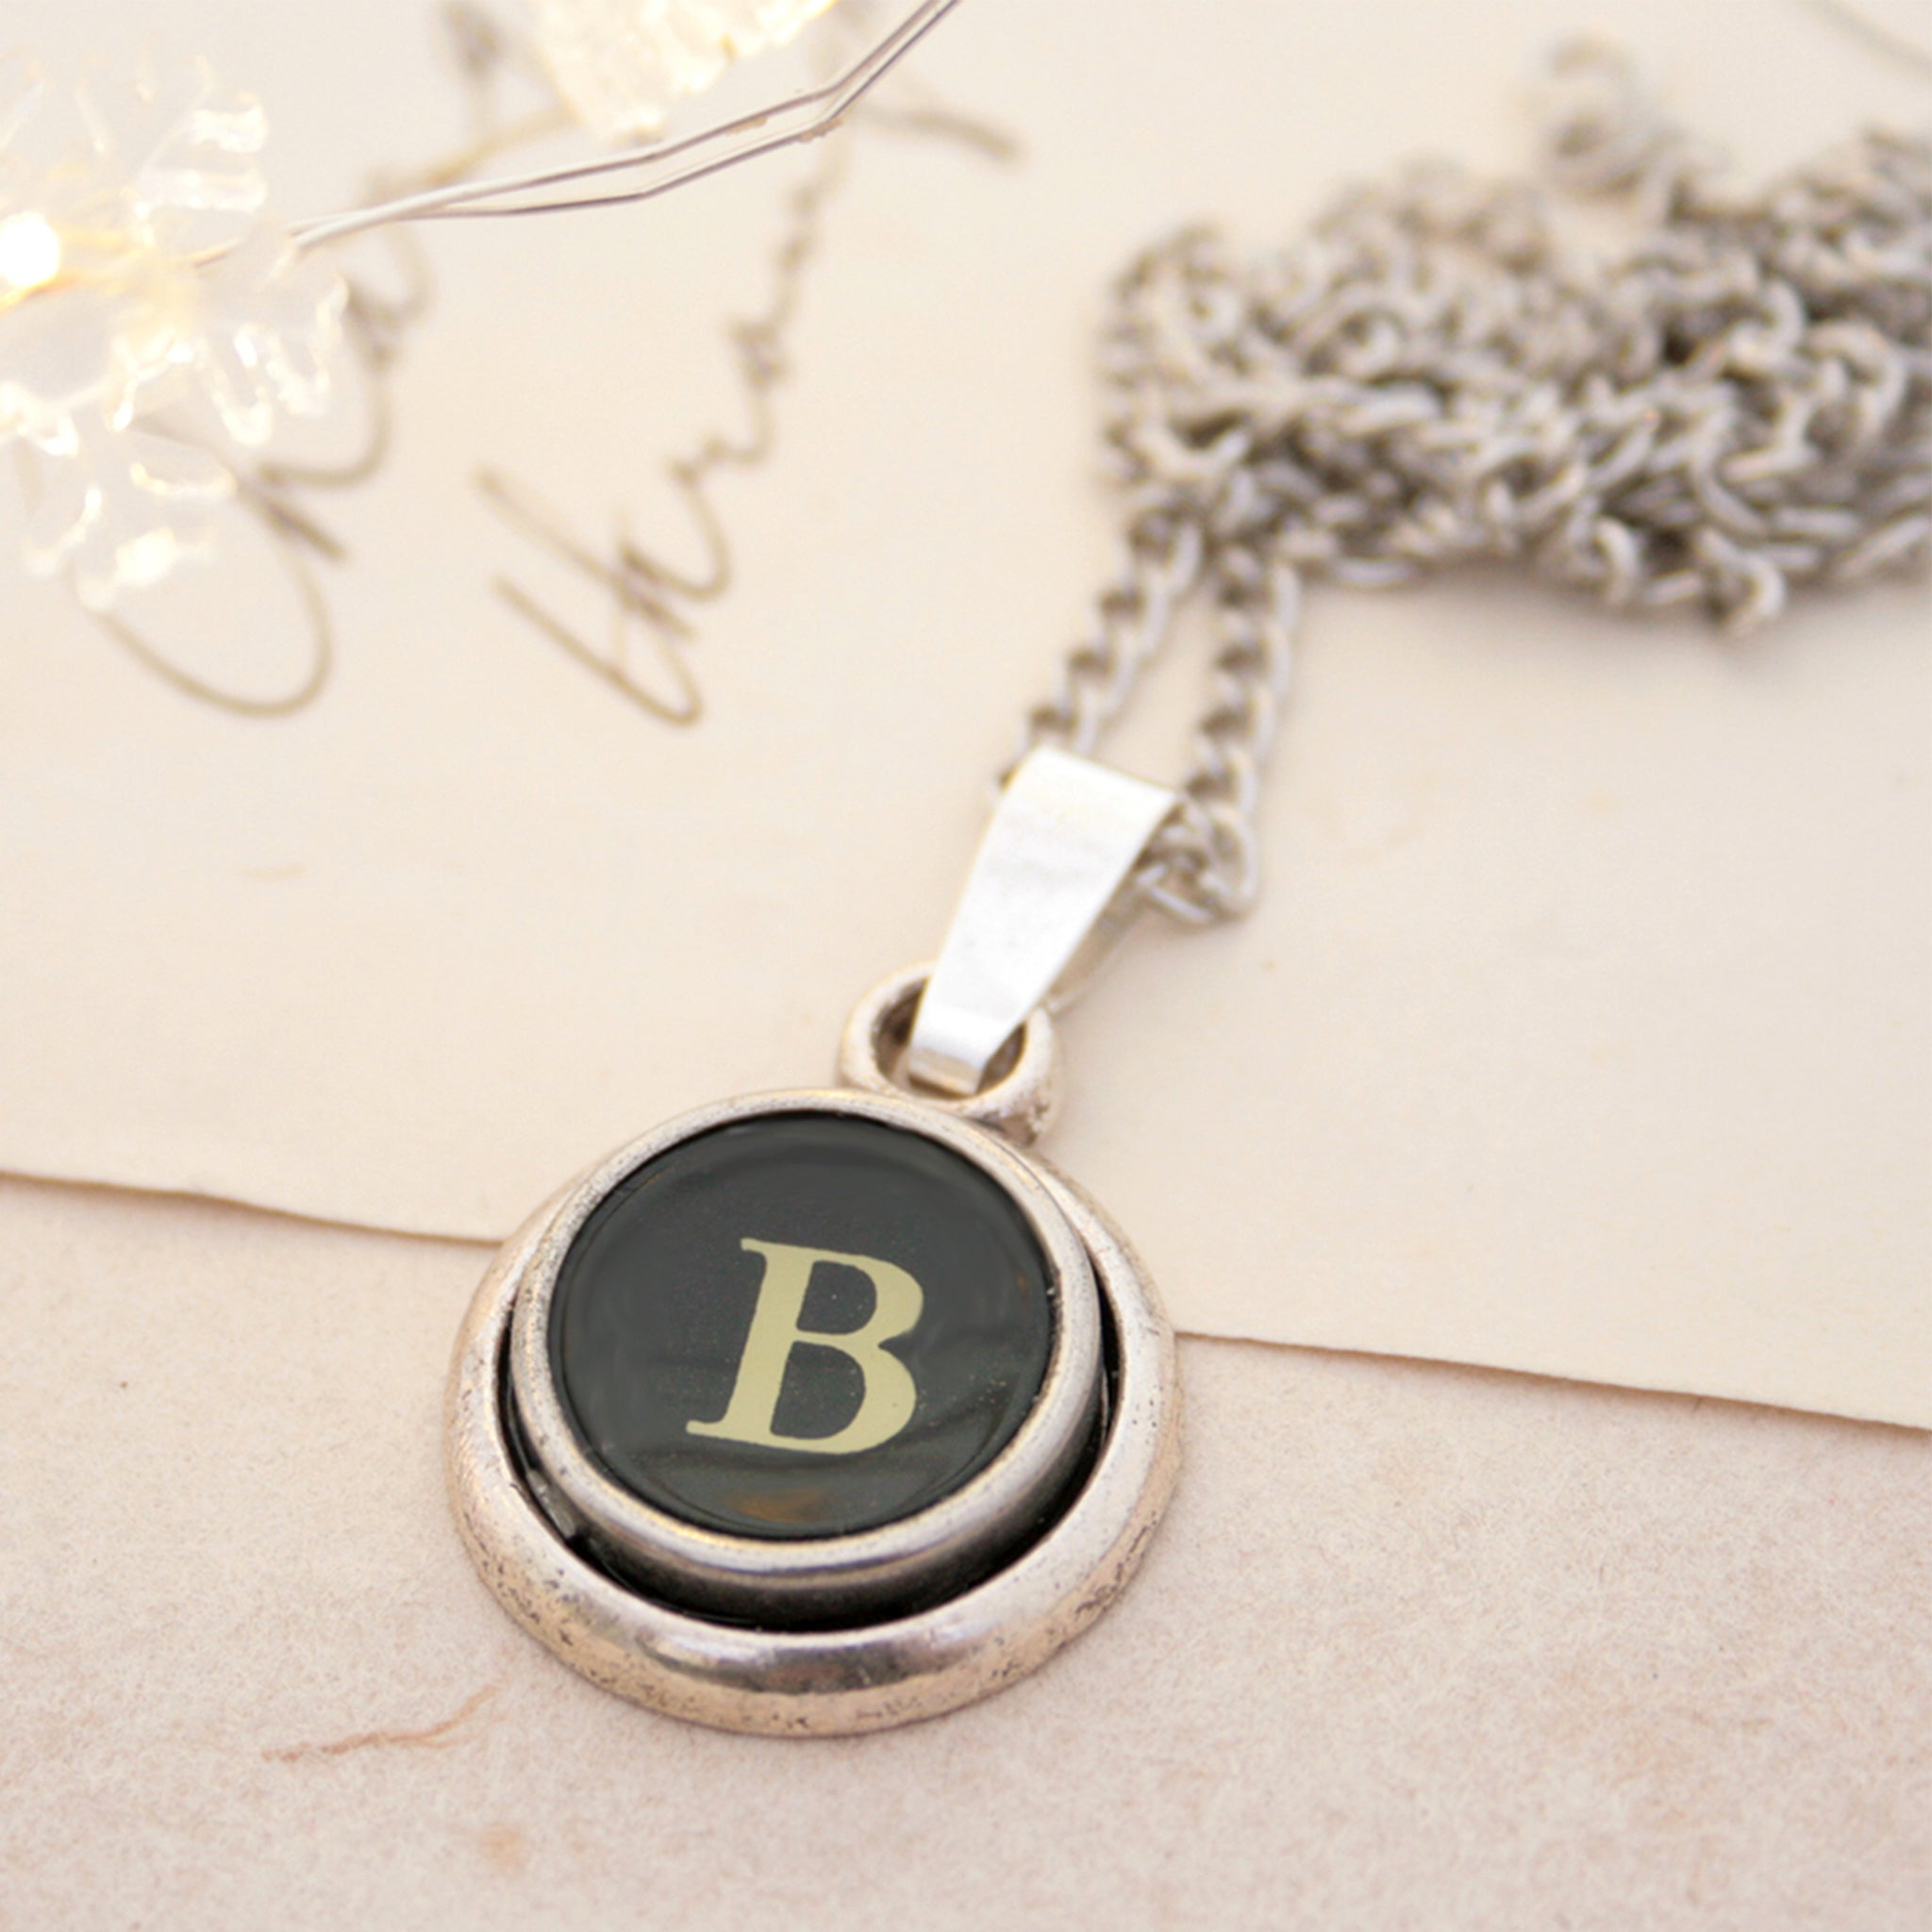 B letter typewriter necklaces made of real typewriter key